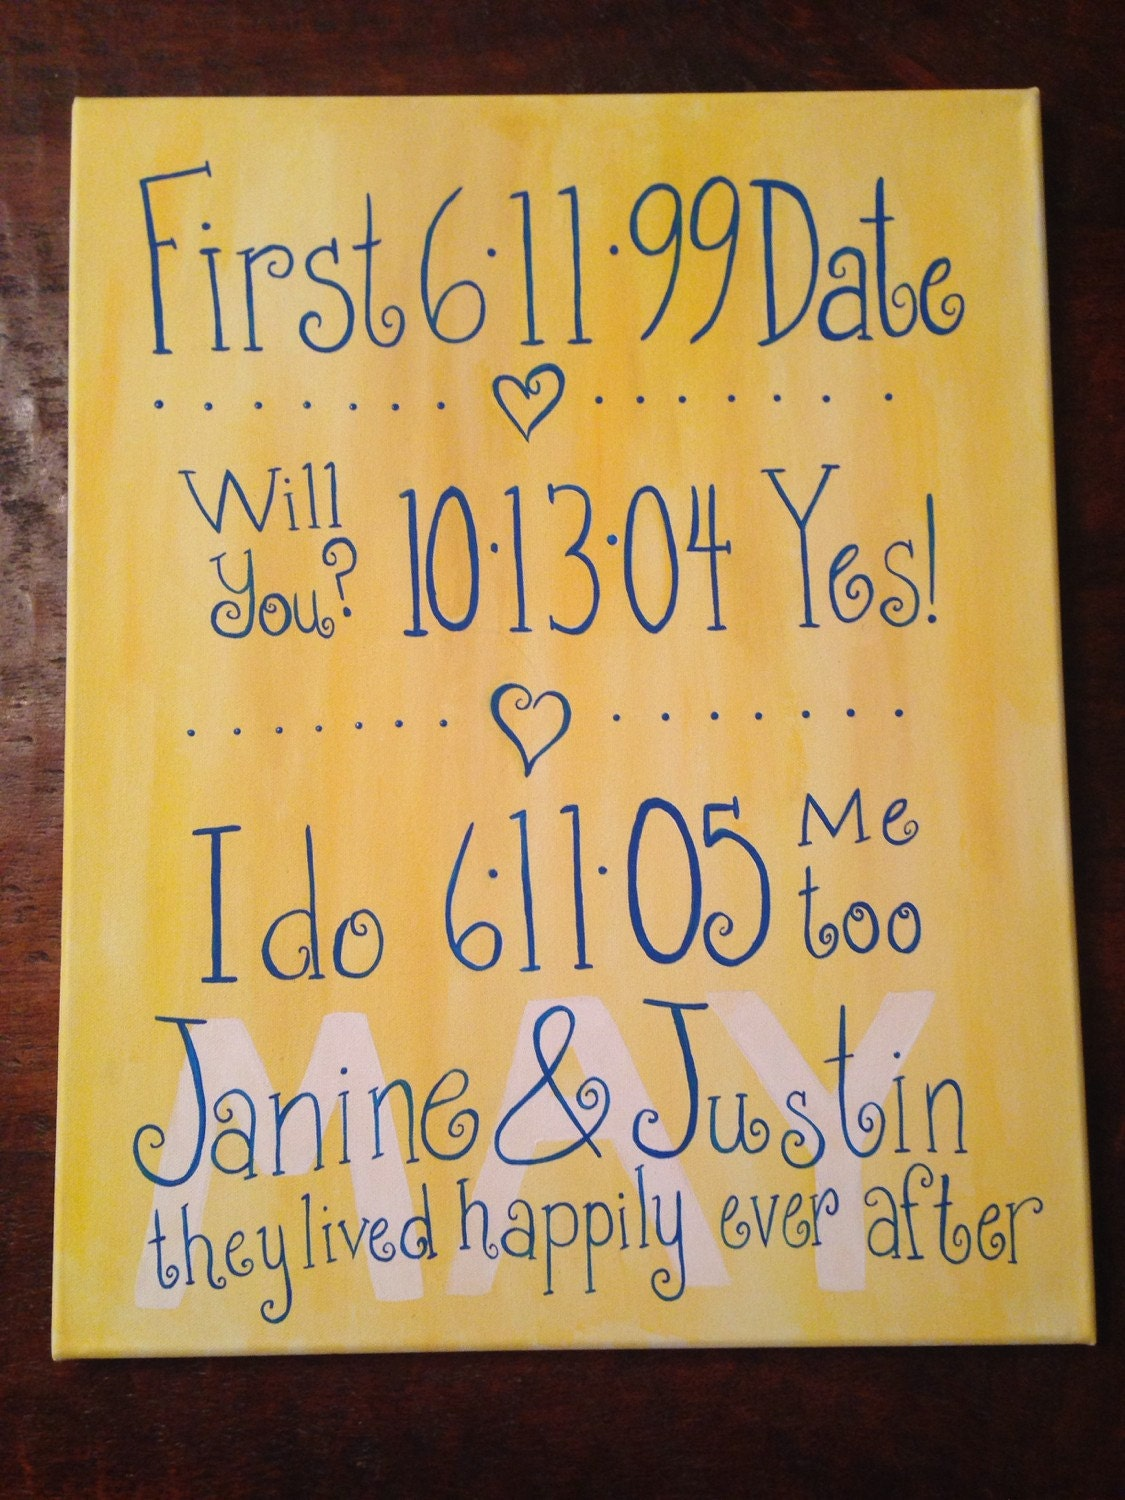 Wall Art With Wedding Date : First date proposal and wedding wall art